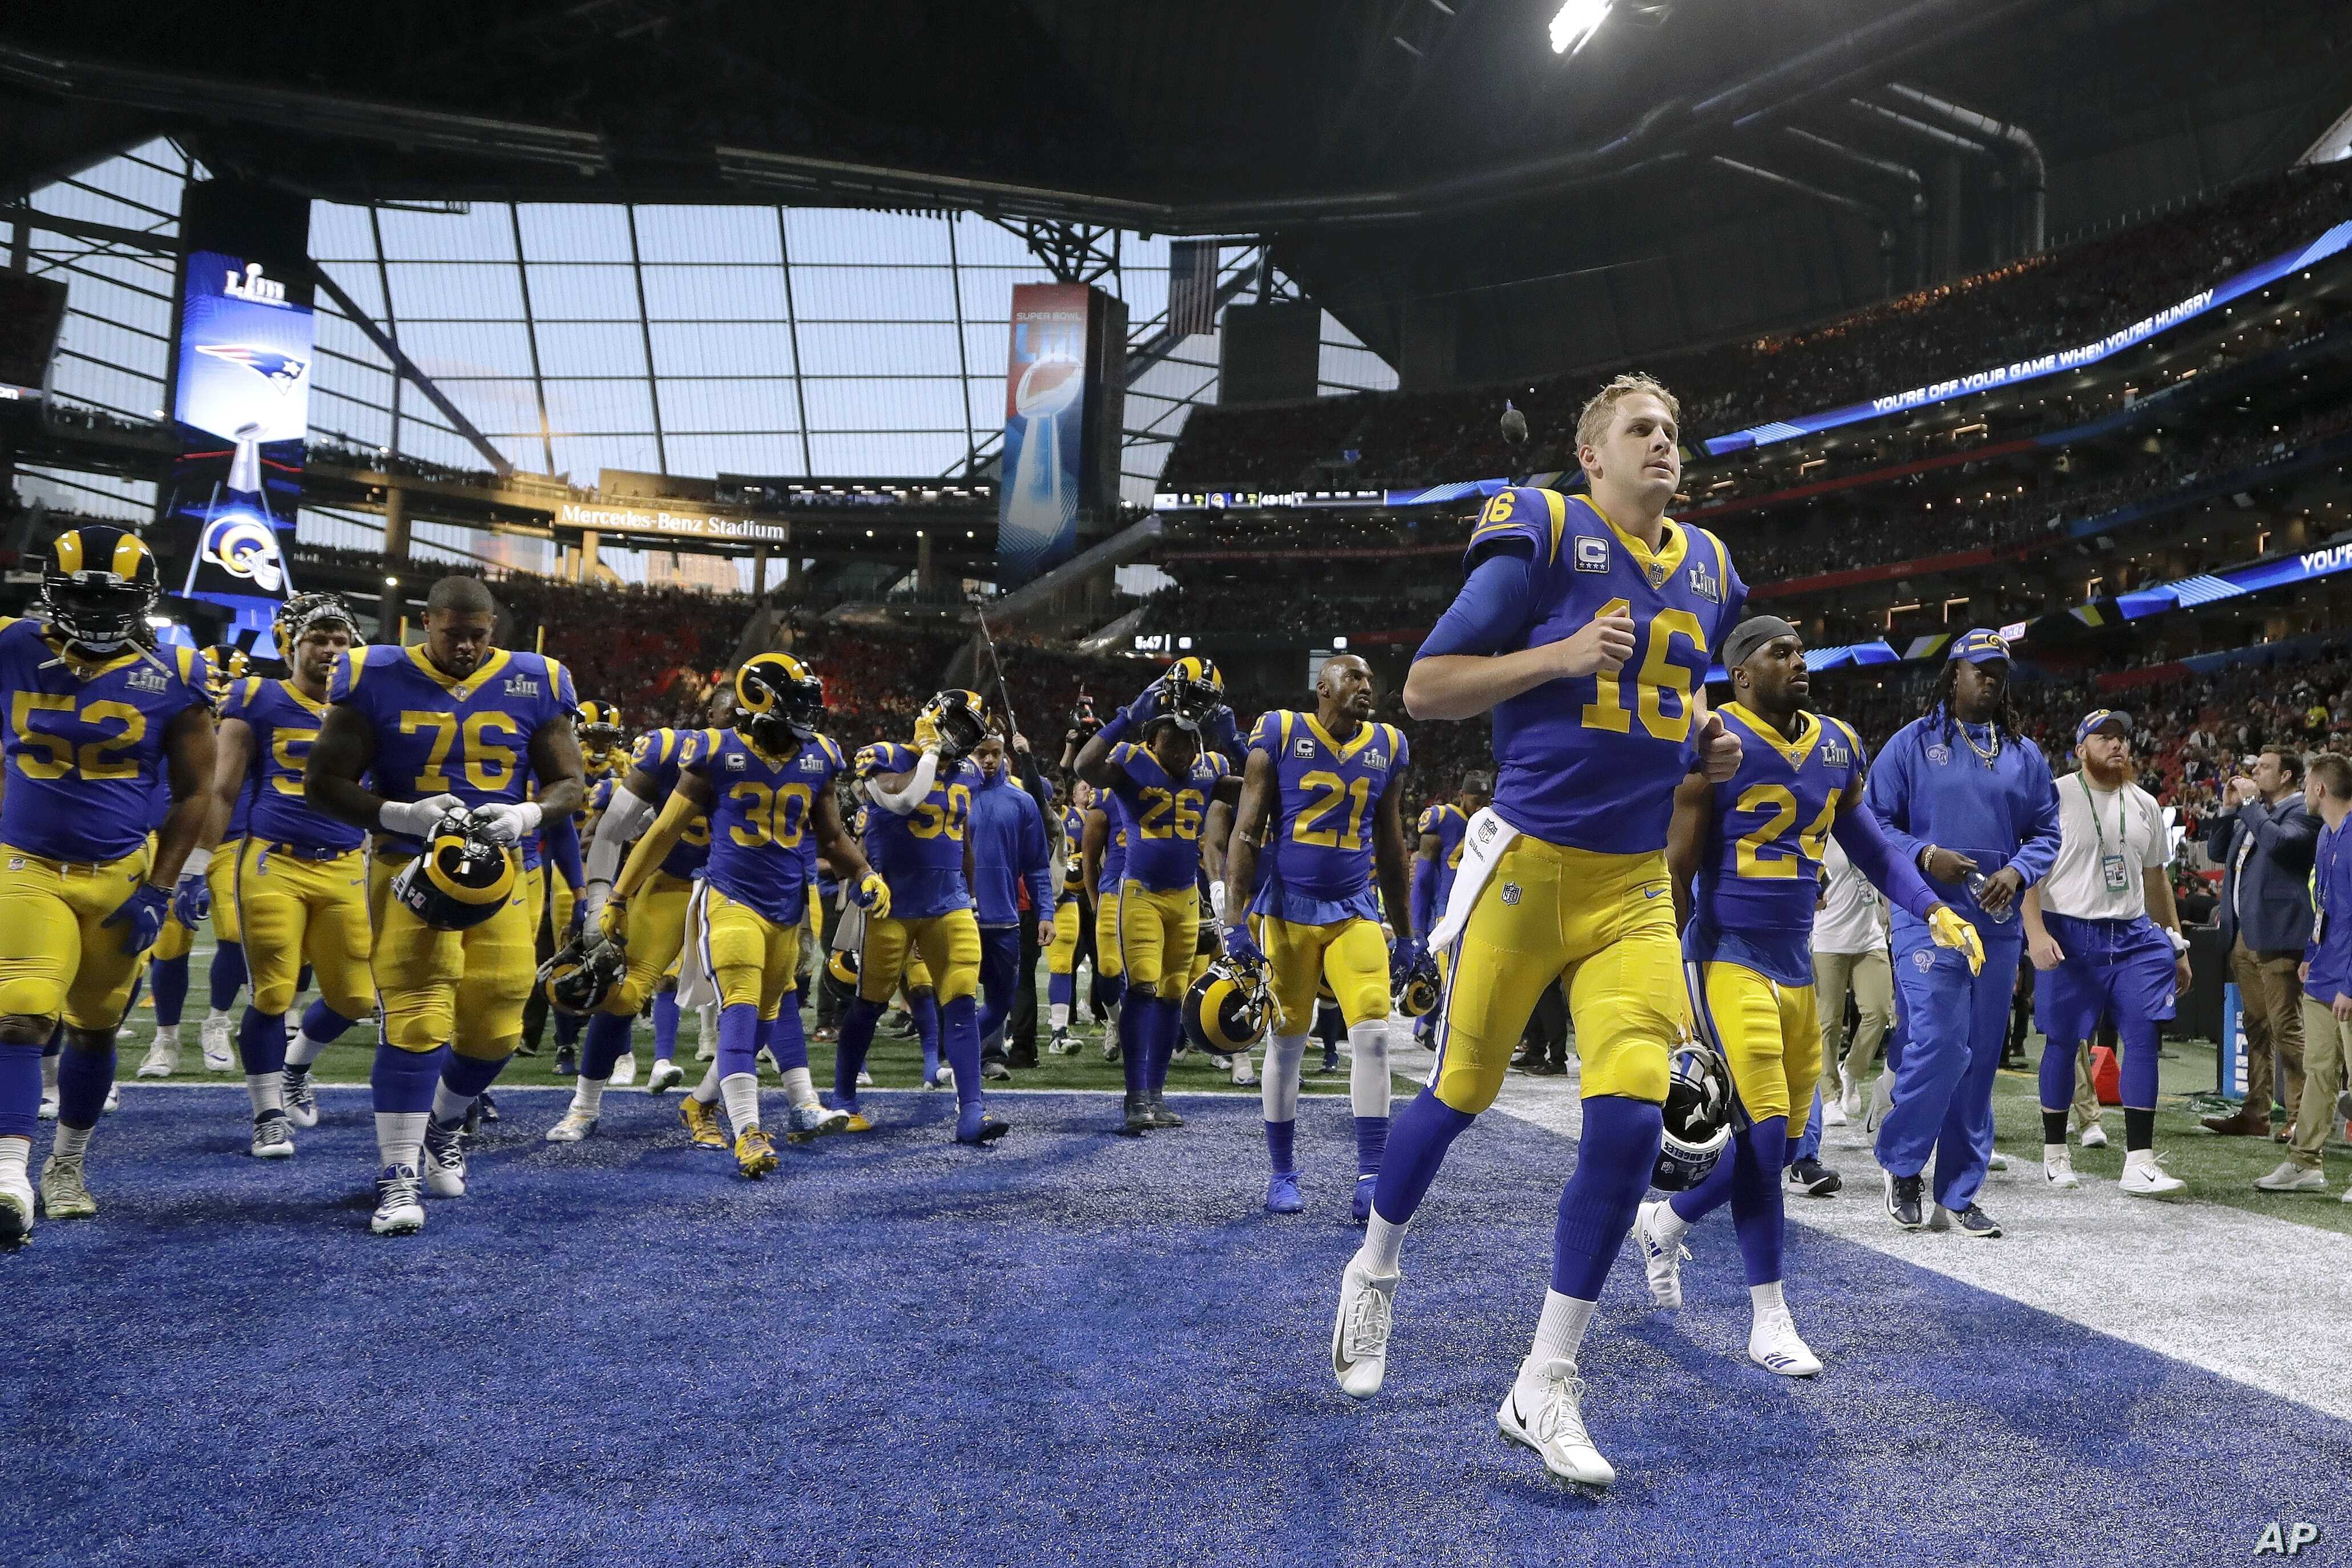 Los Angeles Rams players are seen before the NFL Super Bowl football game between the Rams and the New England Patriots, Feb. 3, 2019, in Atlanta.